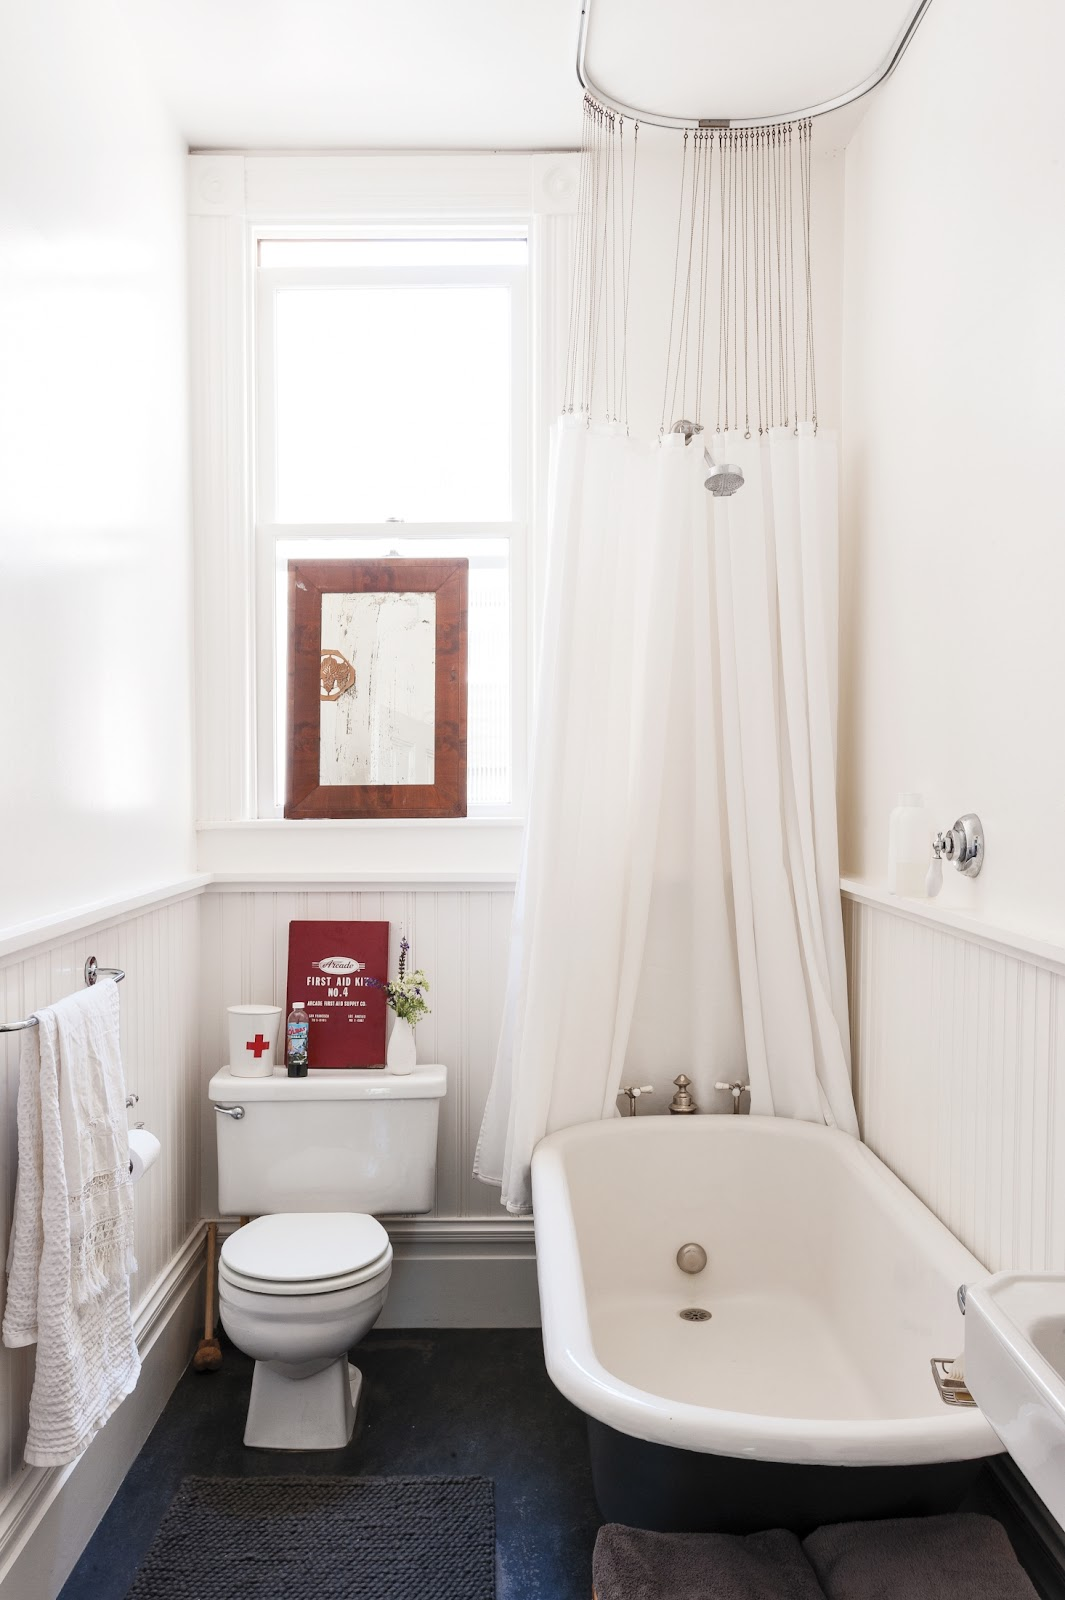 In her wee bath, clothing designer Dagmar Daley ditched her curtains, used all white to maximize the sense of light and air, and she used vertical elements, wainscoting and a shower curtain, to emphasize the height of the room.Photographby Matthew Williams fromRemodelista: A Manual for the Considered Home.